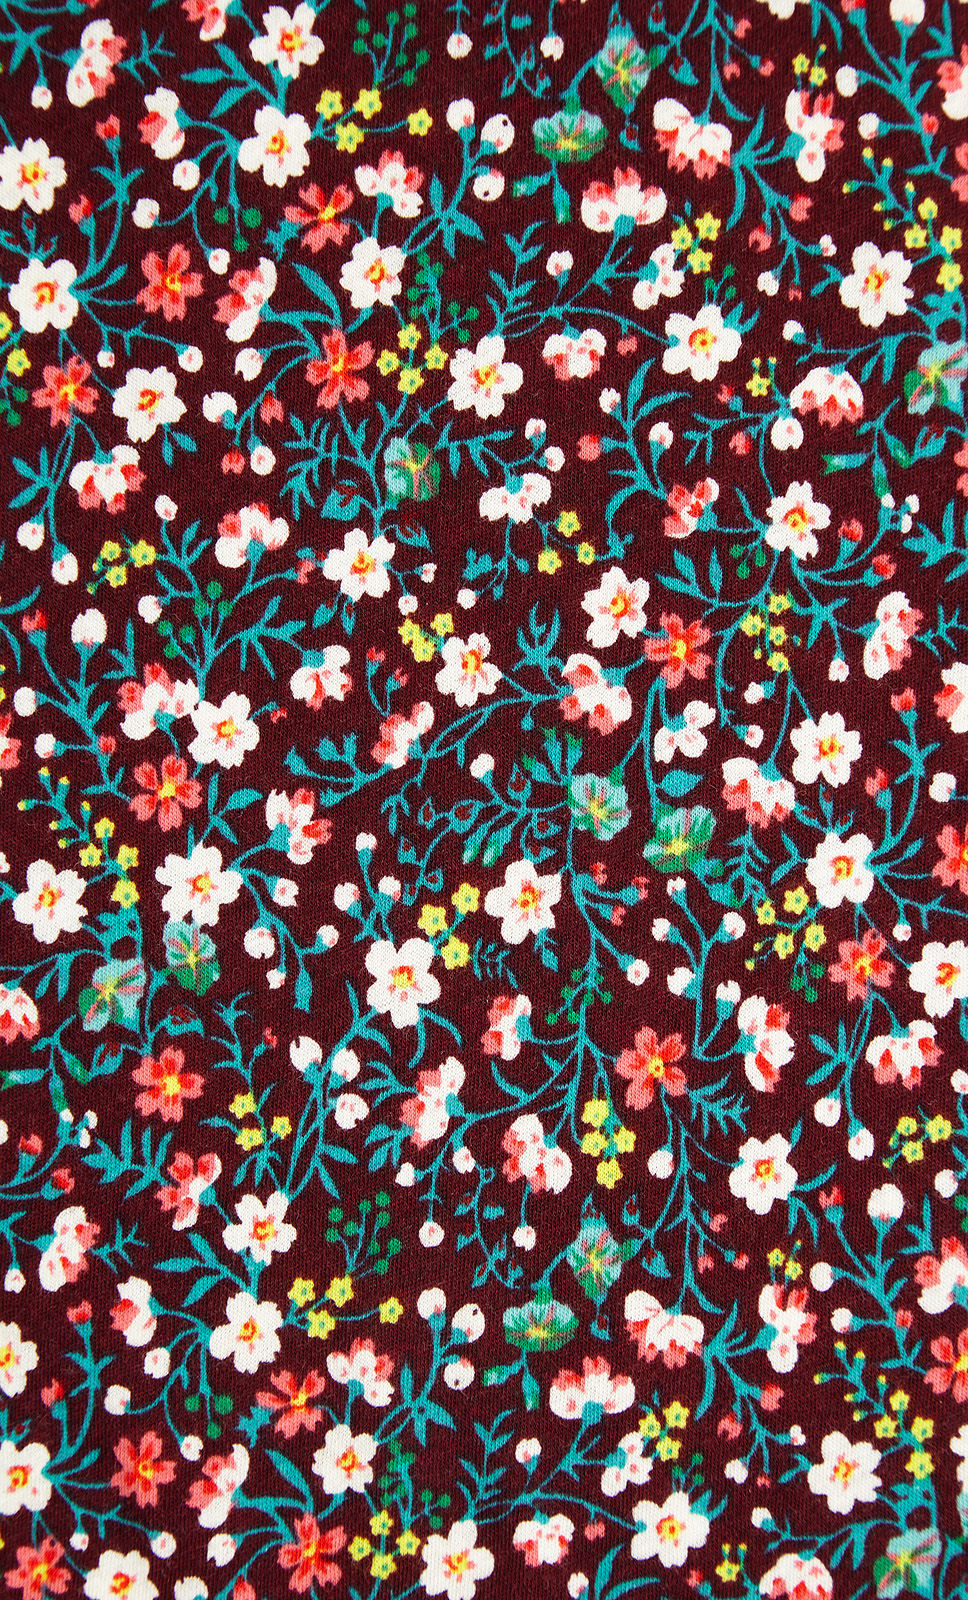 Printed-Cotton-Jersey-Beet-Red